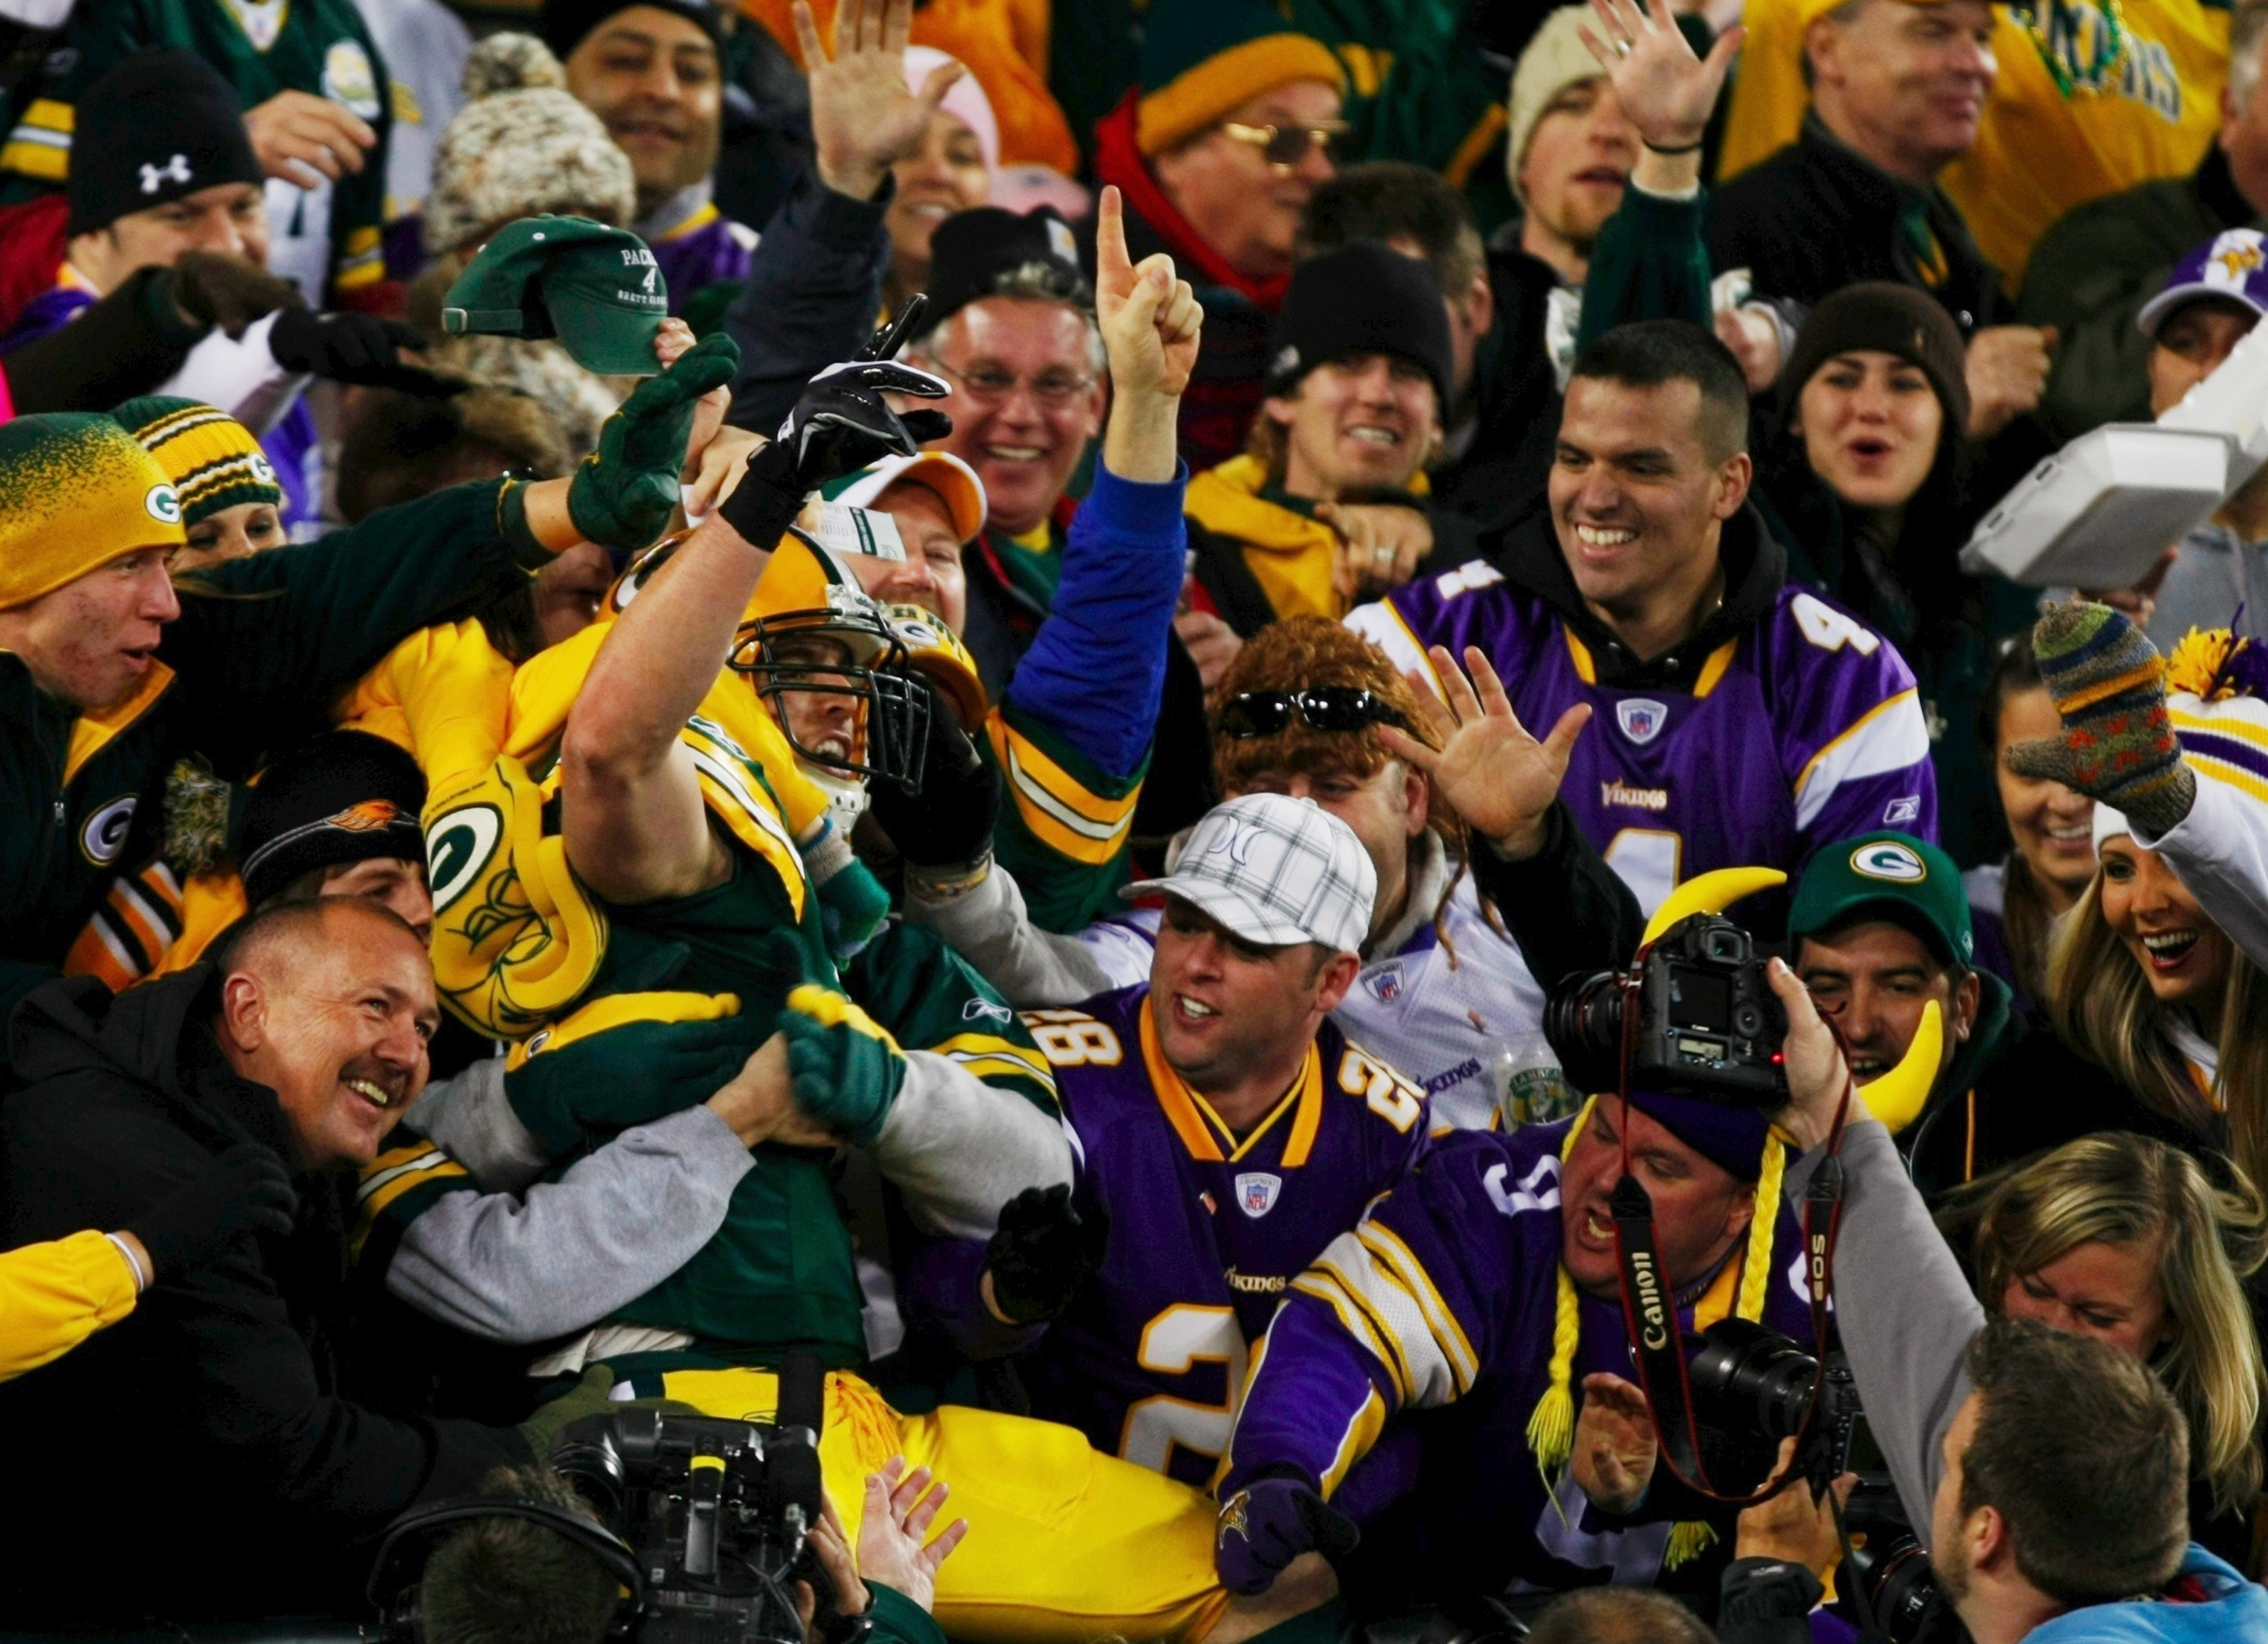 GREEN BAY, WI - NOVEMBER 01:  Spencer Havner #41 of the Green Bay Packers leaps into the stands to celebrate his touchdown with fans during the third quarter of the game against the Minnesota Vikings at Lambeau Field on November 1, 2009 in Green Bay, Wisc